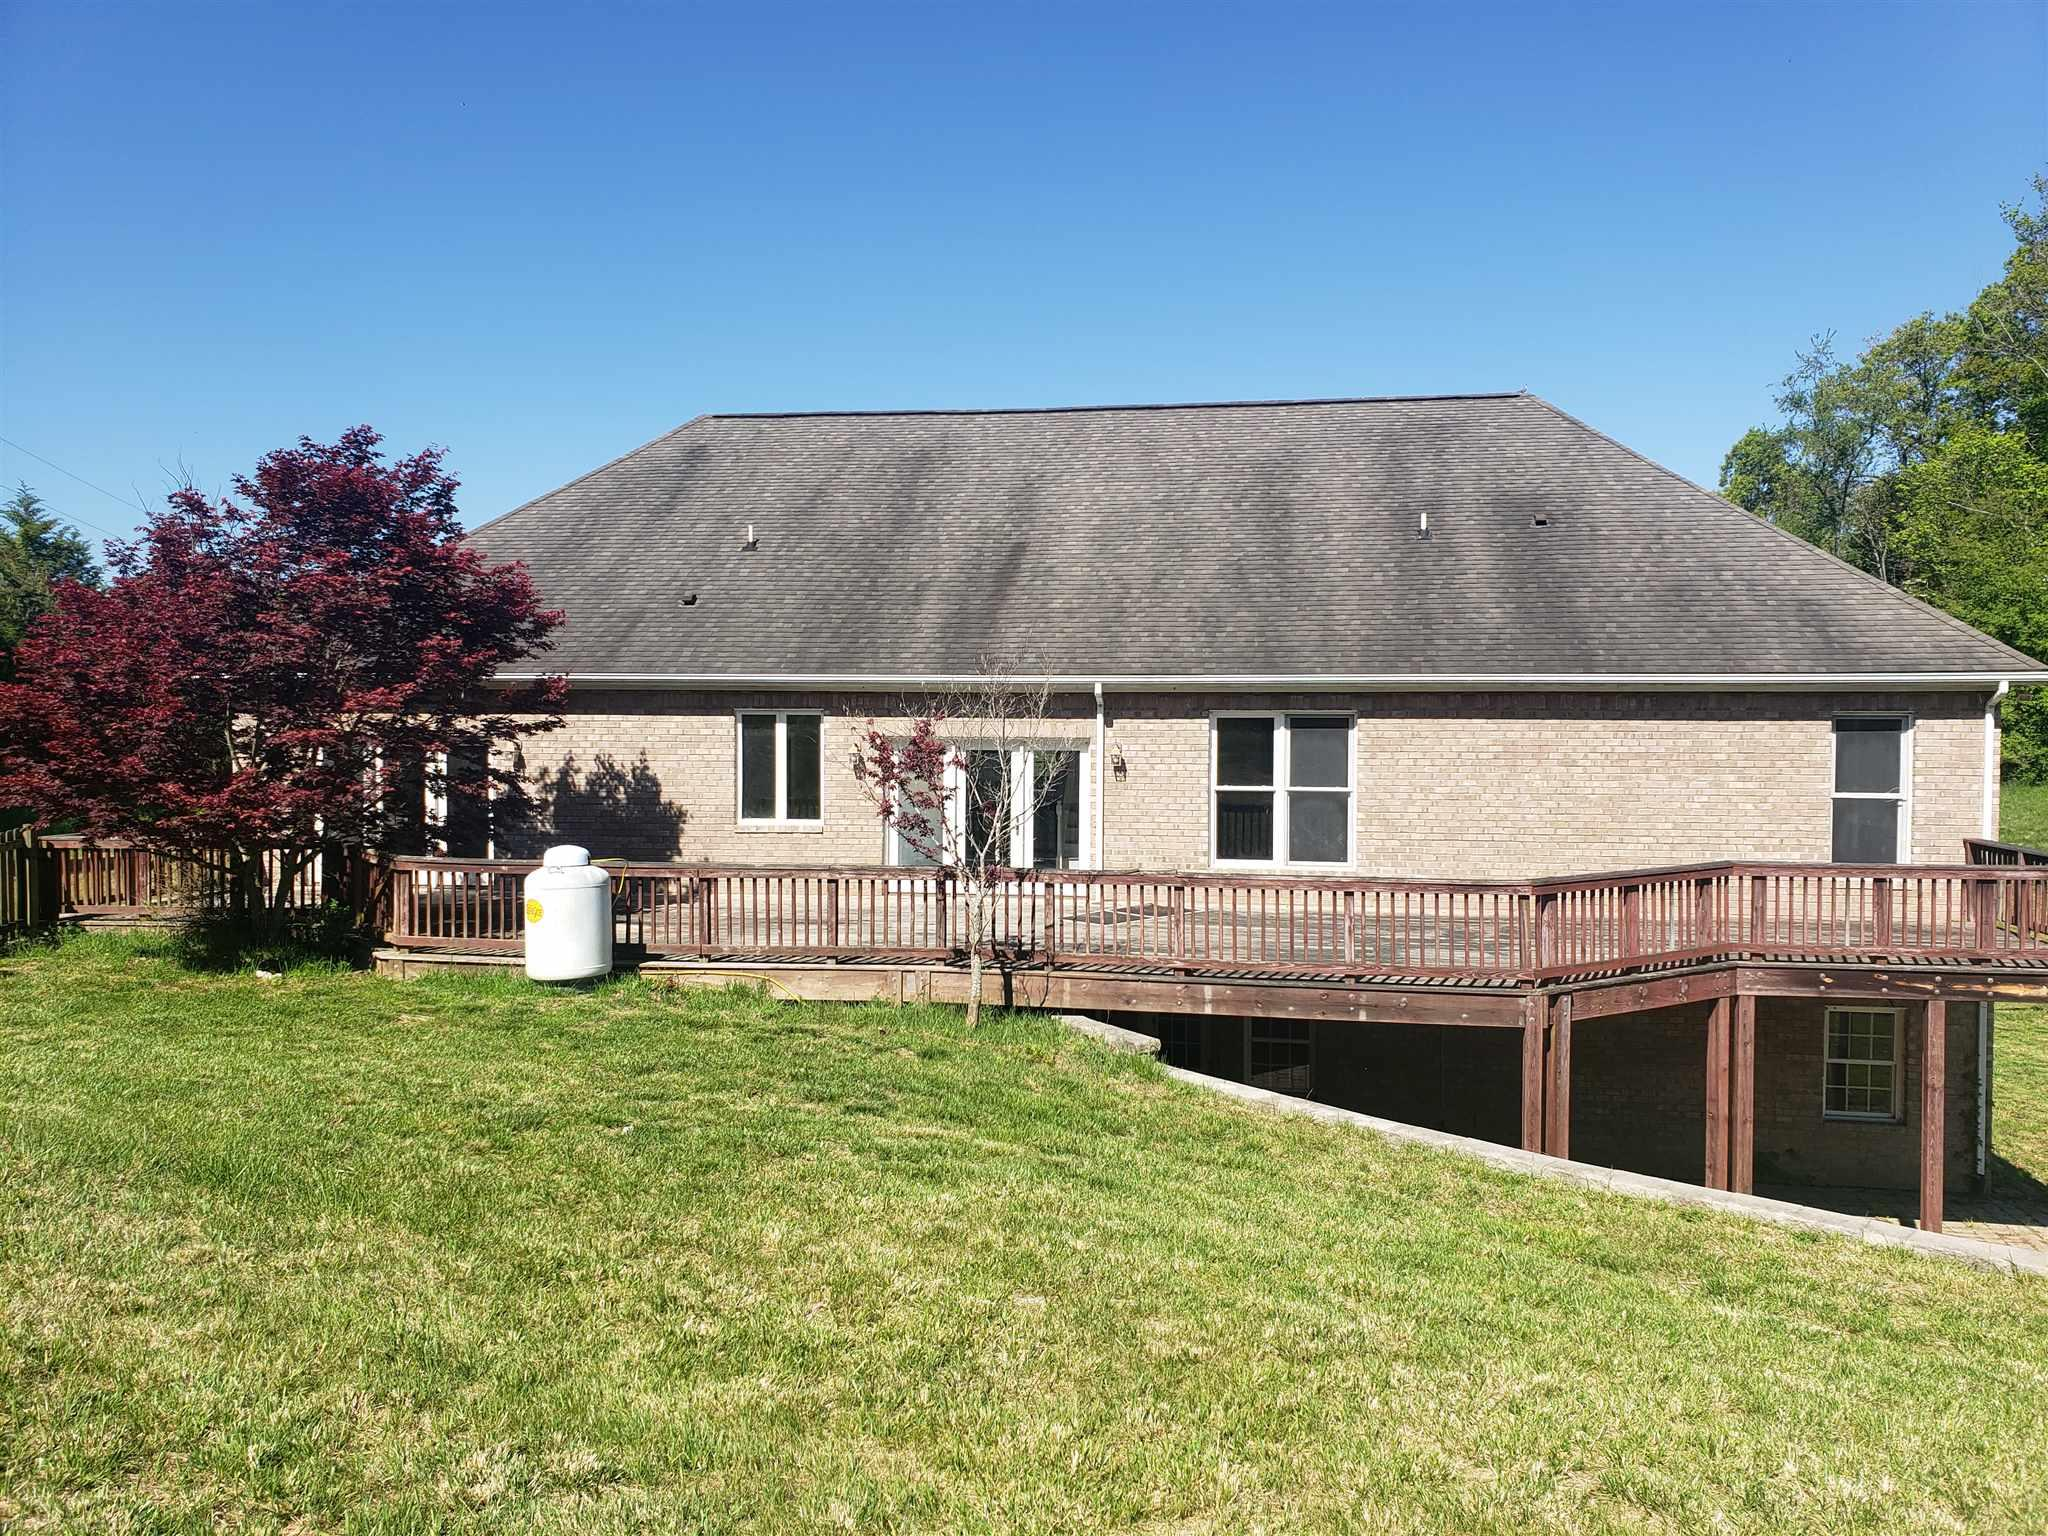 Beautiful Home in Riner with almost 7 acres of land. Could fence for livestock. All brick home with great views. Granite counter tops. Plenty of room for entertaining. Basement is almost completely finished with wet bar and bathroom. other rooms for spreading out.